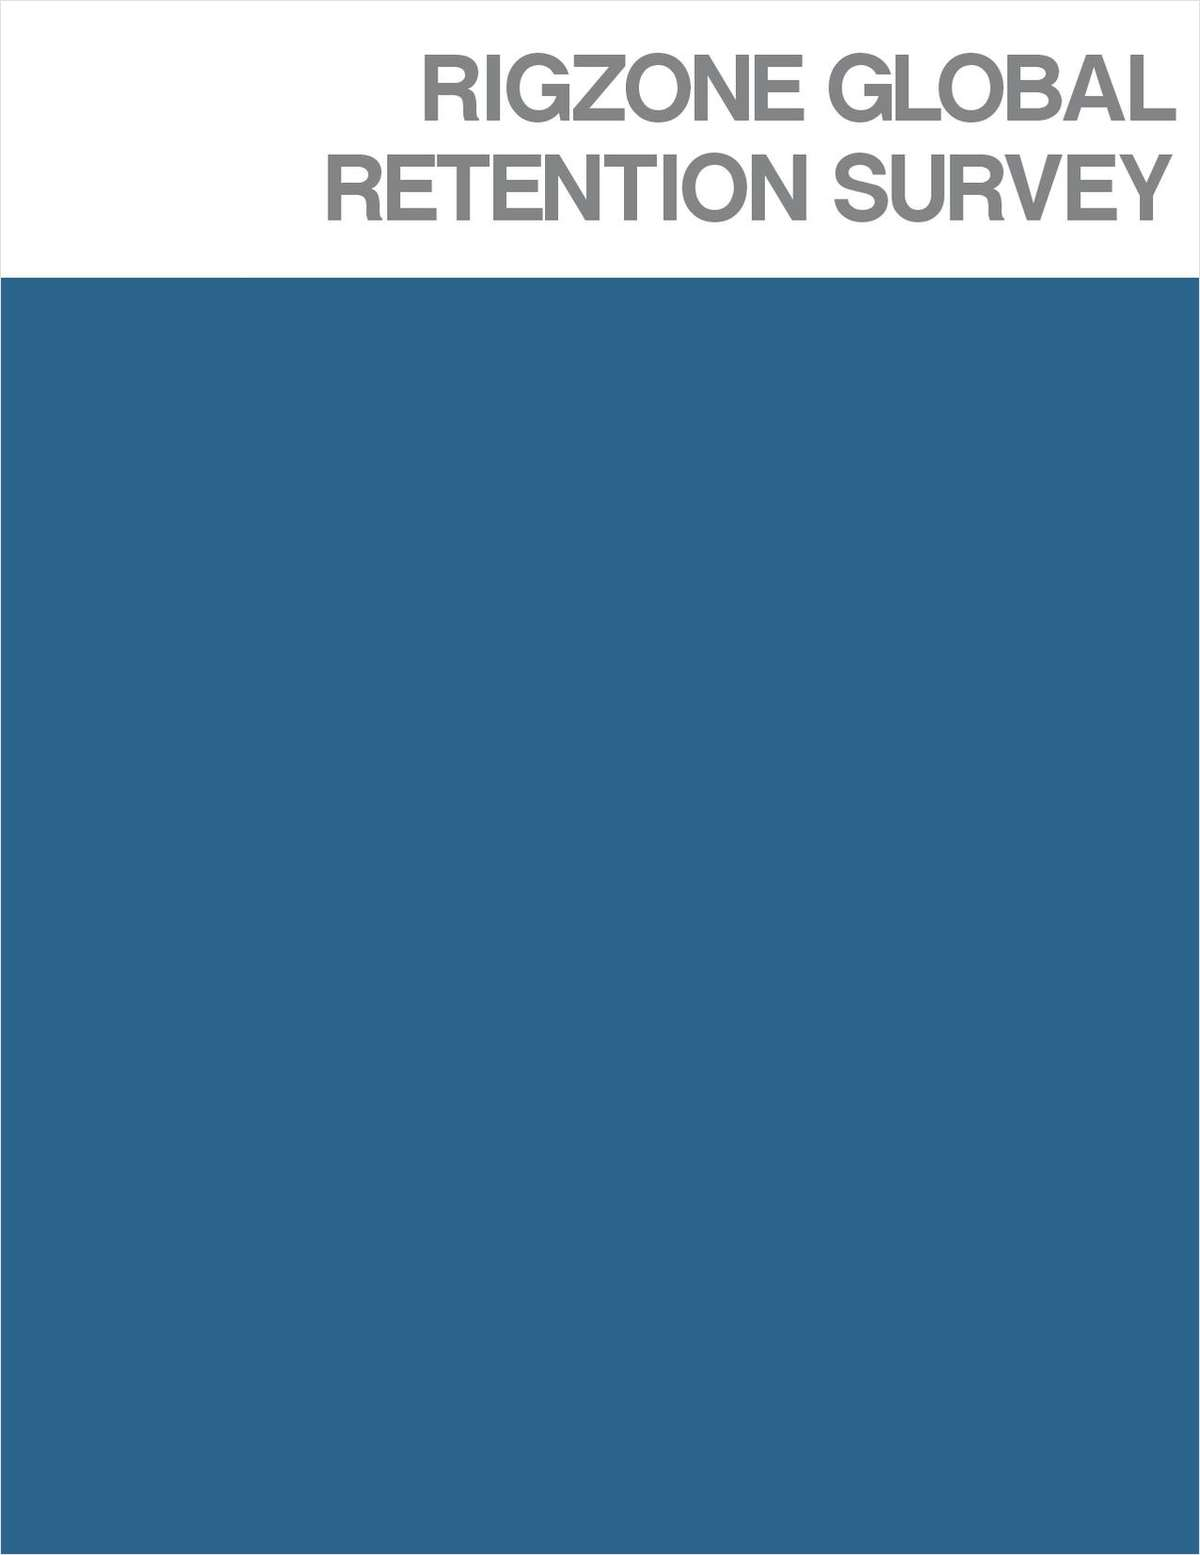 Rigzone Global Retention Survey